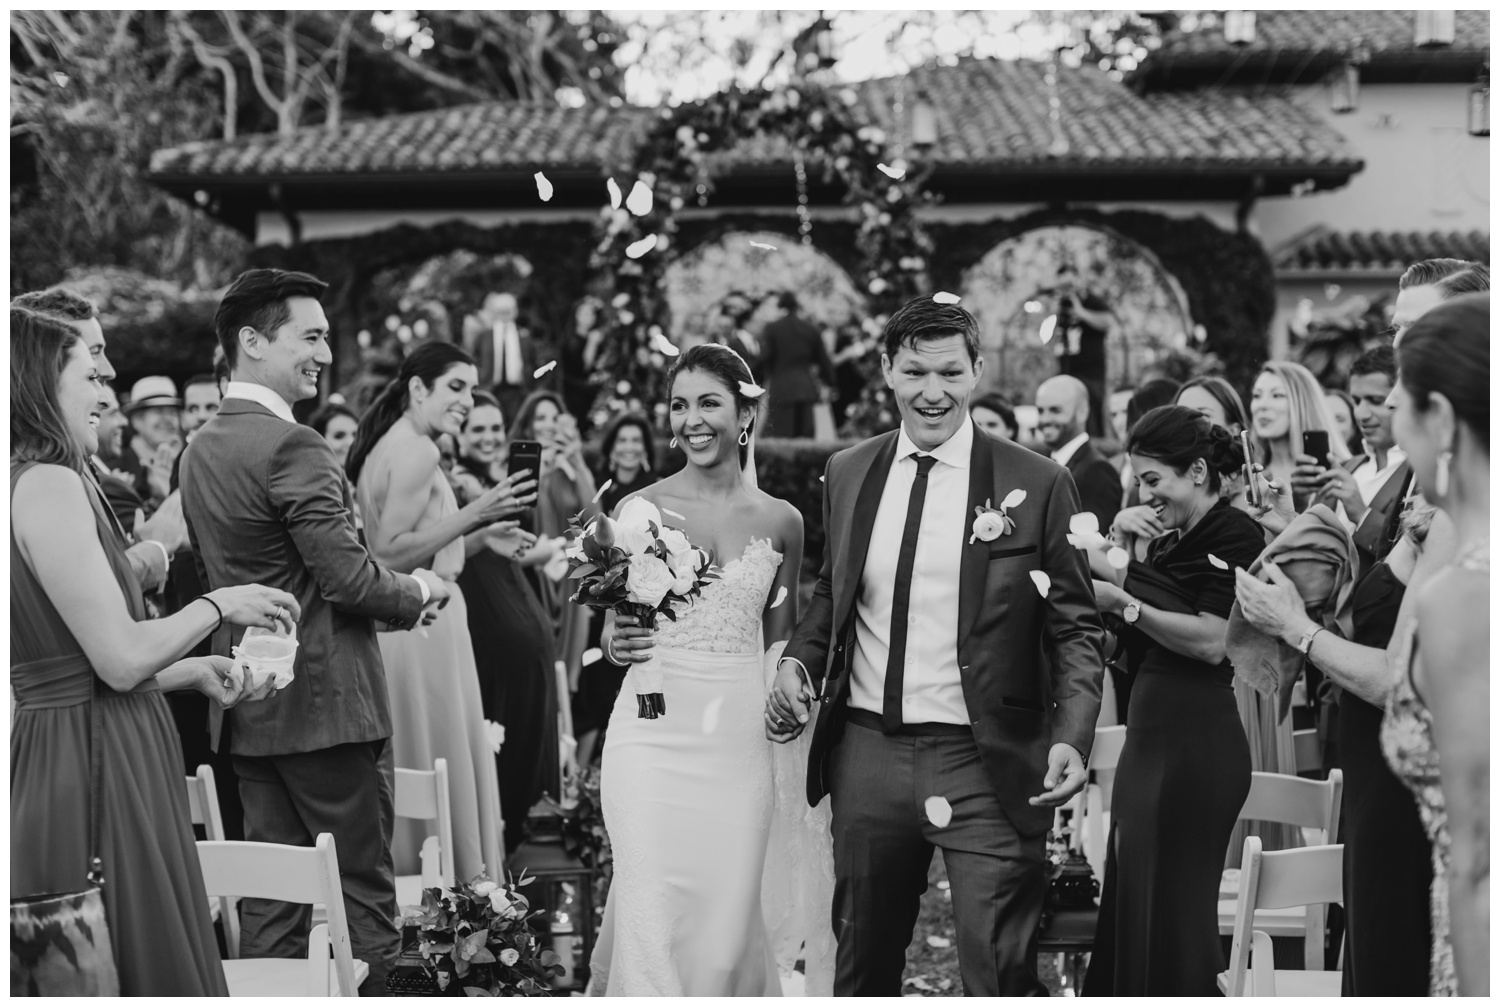 adriana_rivera_miranda_weddings_el_salvador_18.jpg